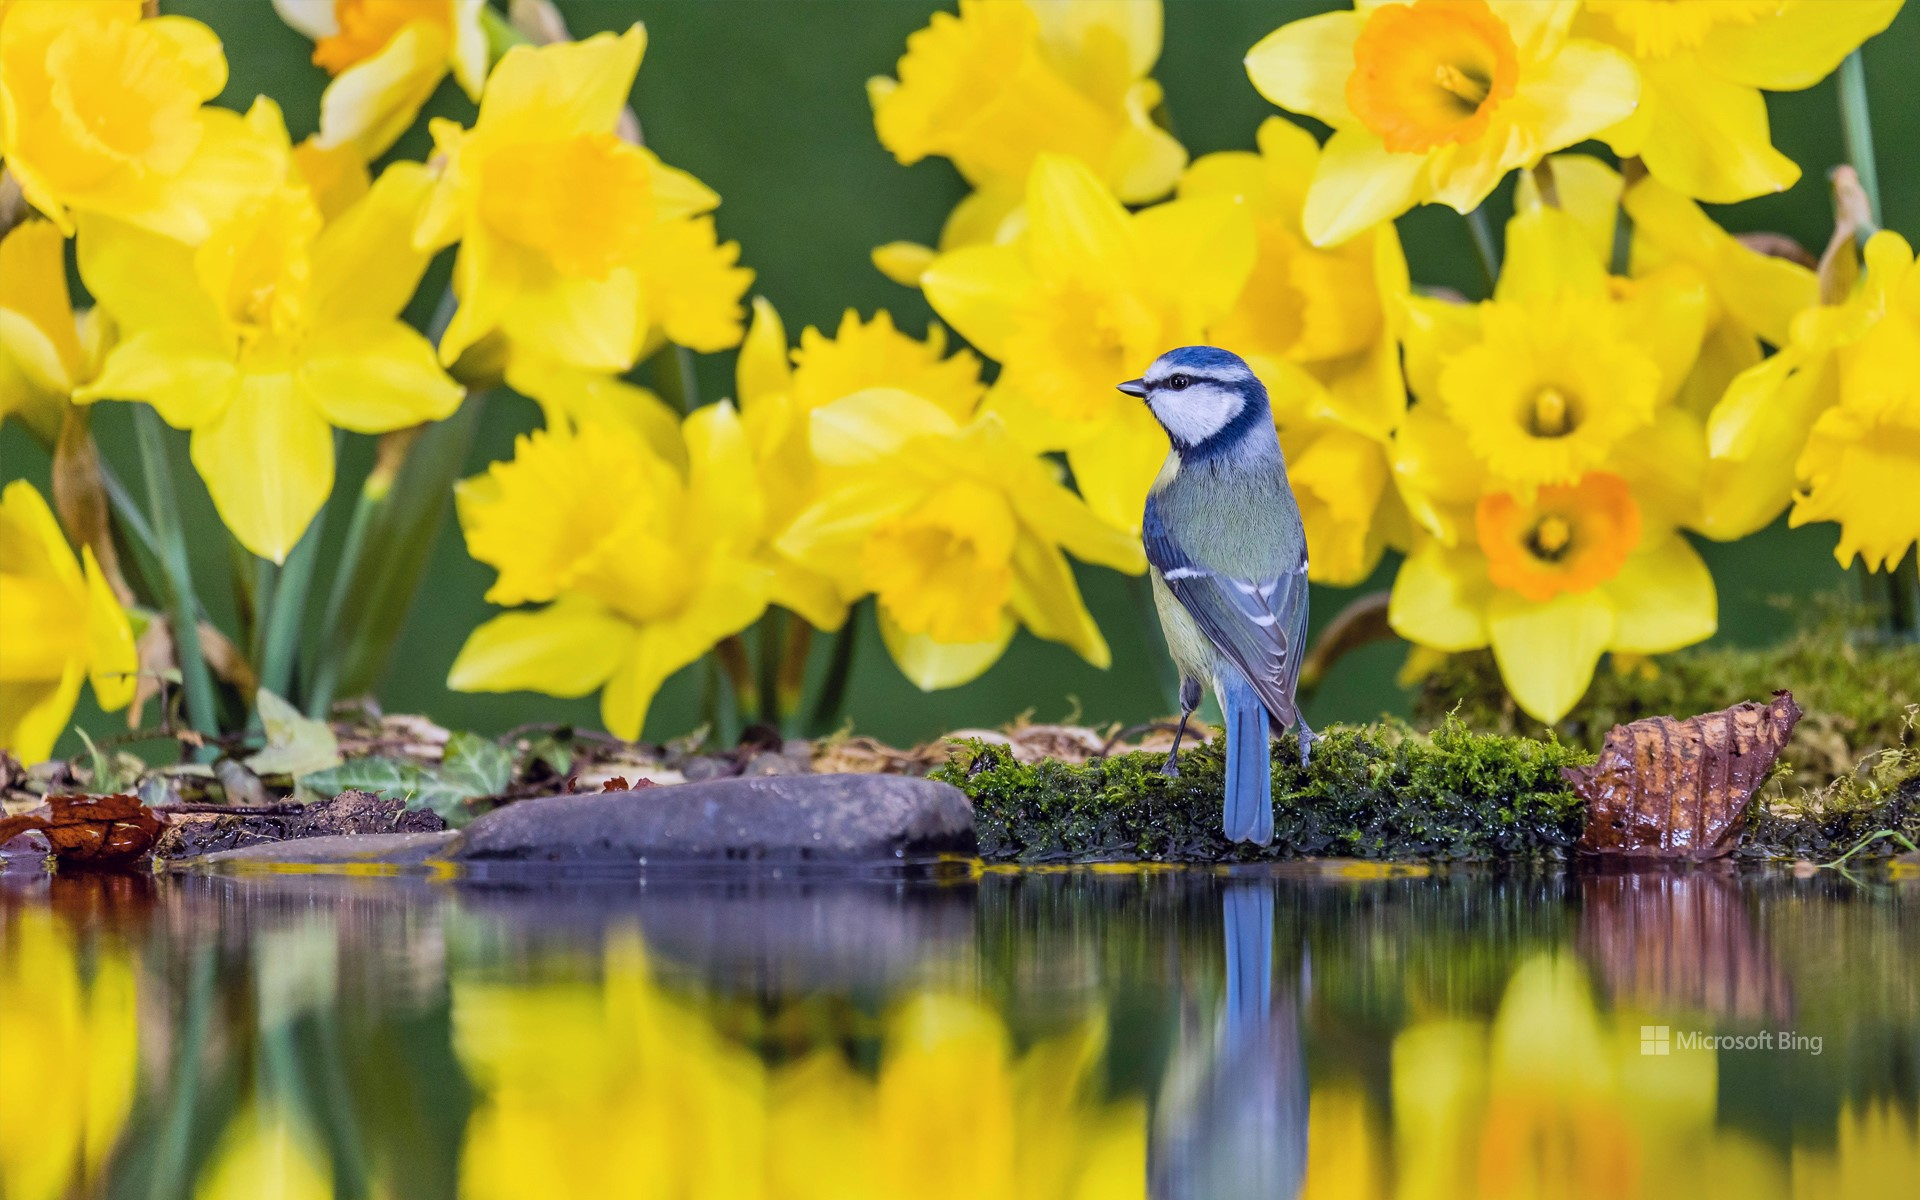 A blue tit amongst daffodils in Mid Wales, United Kingdom